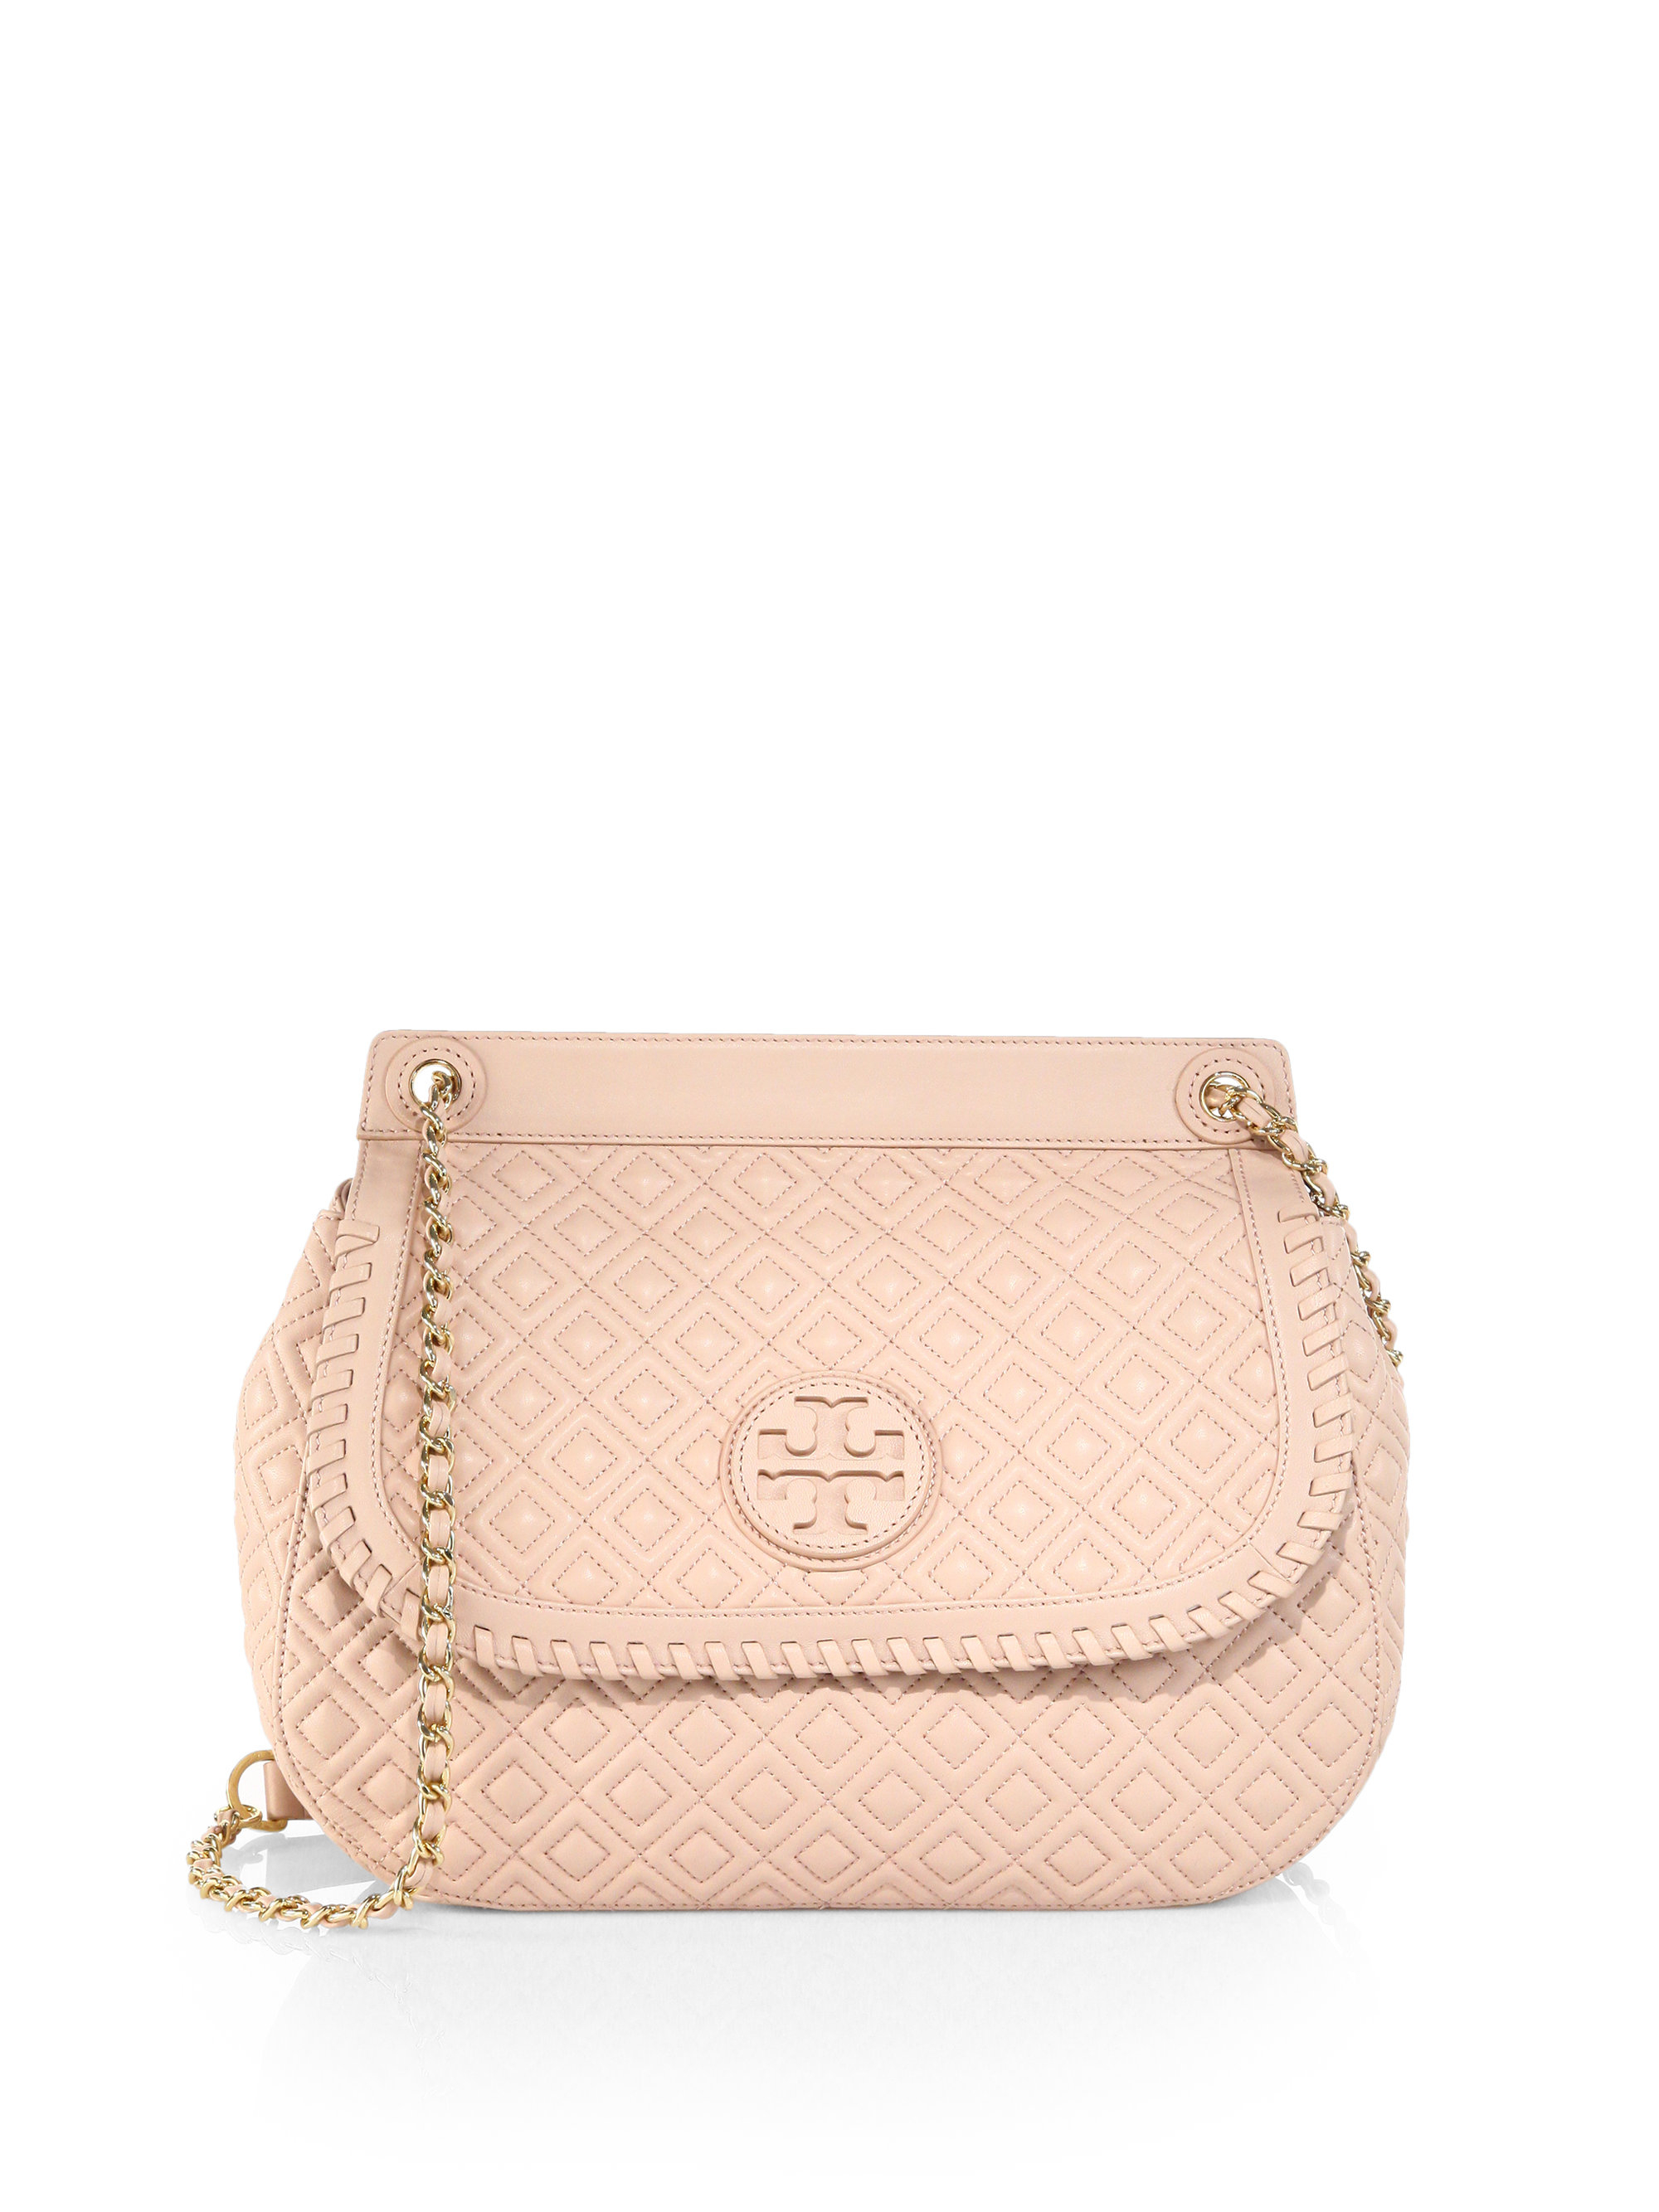 4b1763c86b62 Tory Burch Marion Quilted Saddle Bag - Best Quilt Grafimage.co